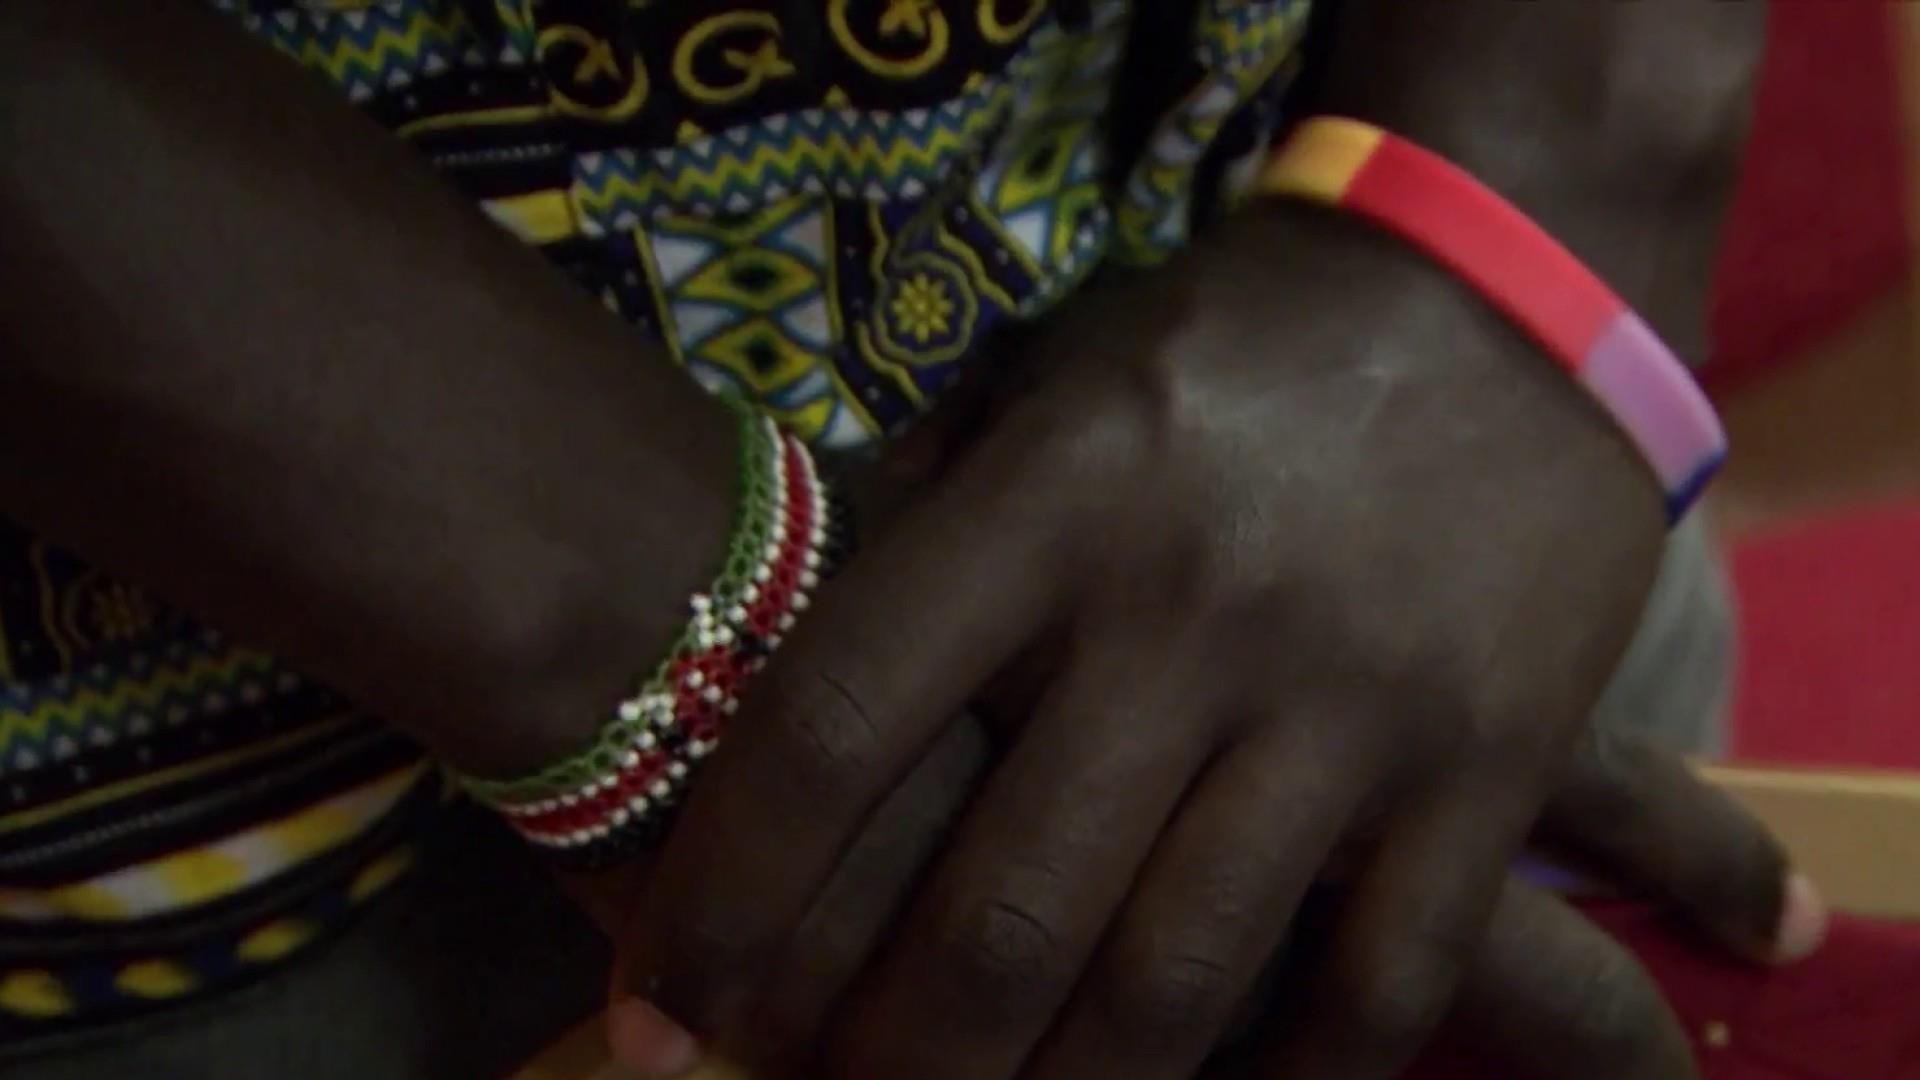 Kenya's LGBTQ community fights for their rights